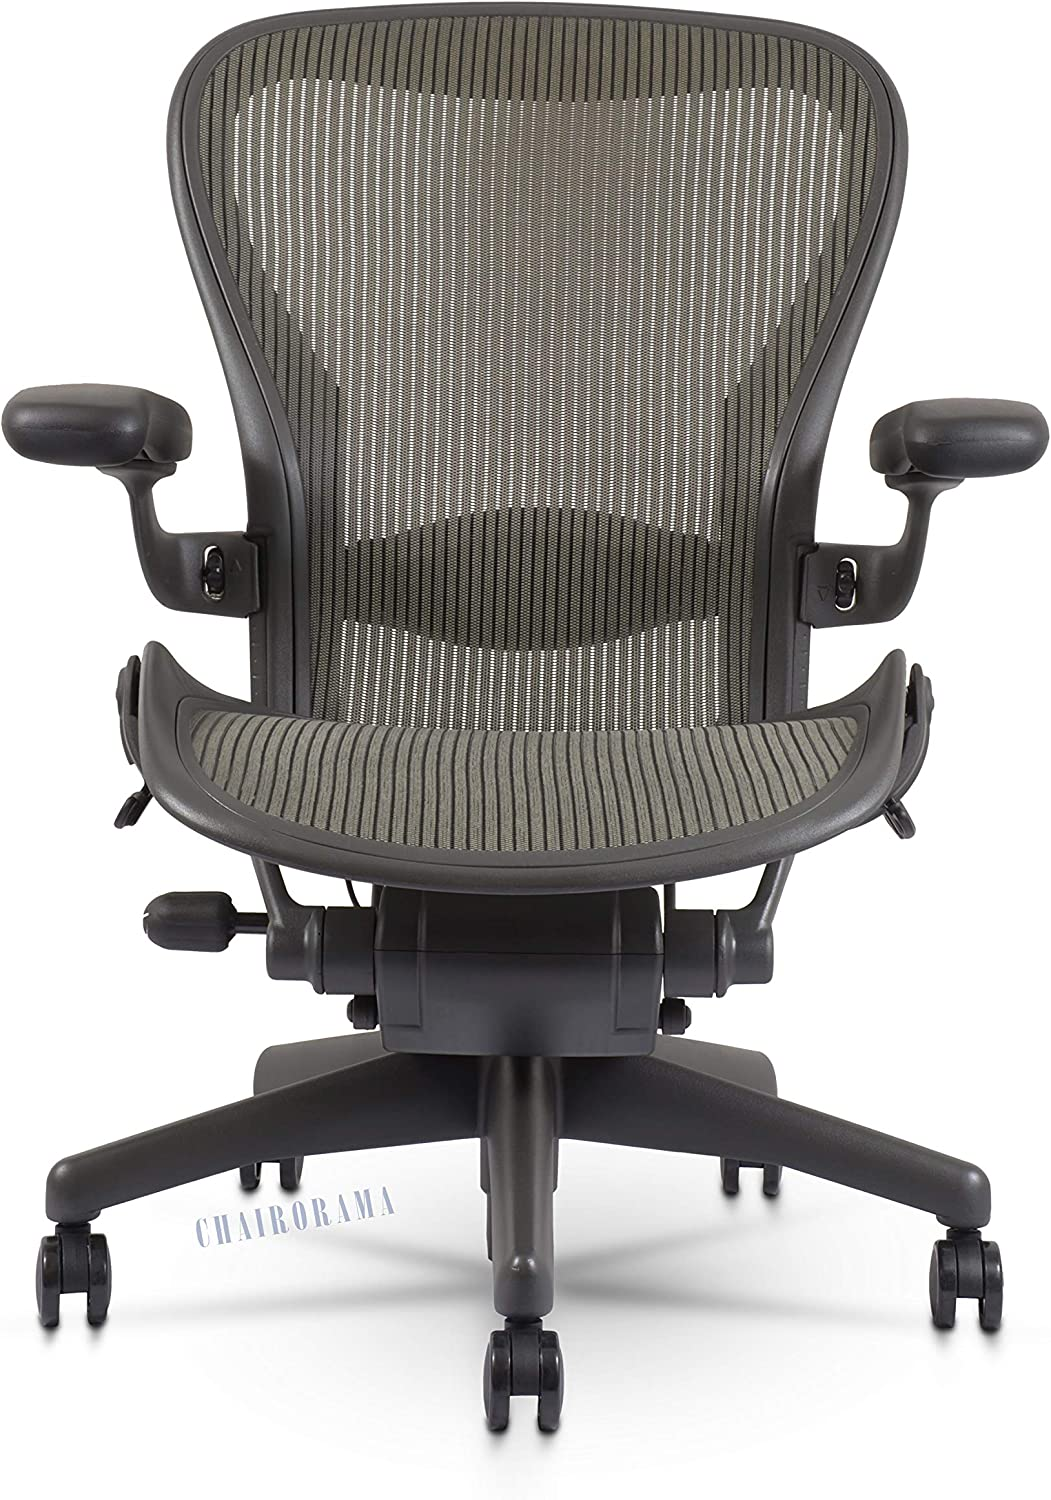 81MQCthPB3L. AC SL1500 - What is The Best Chair For Sciatica Nerve Problems? Get Relief from Sciatica Pain - ChairPicks